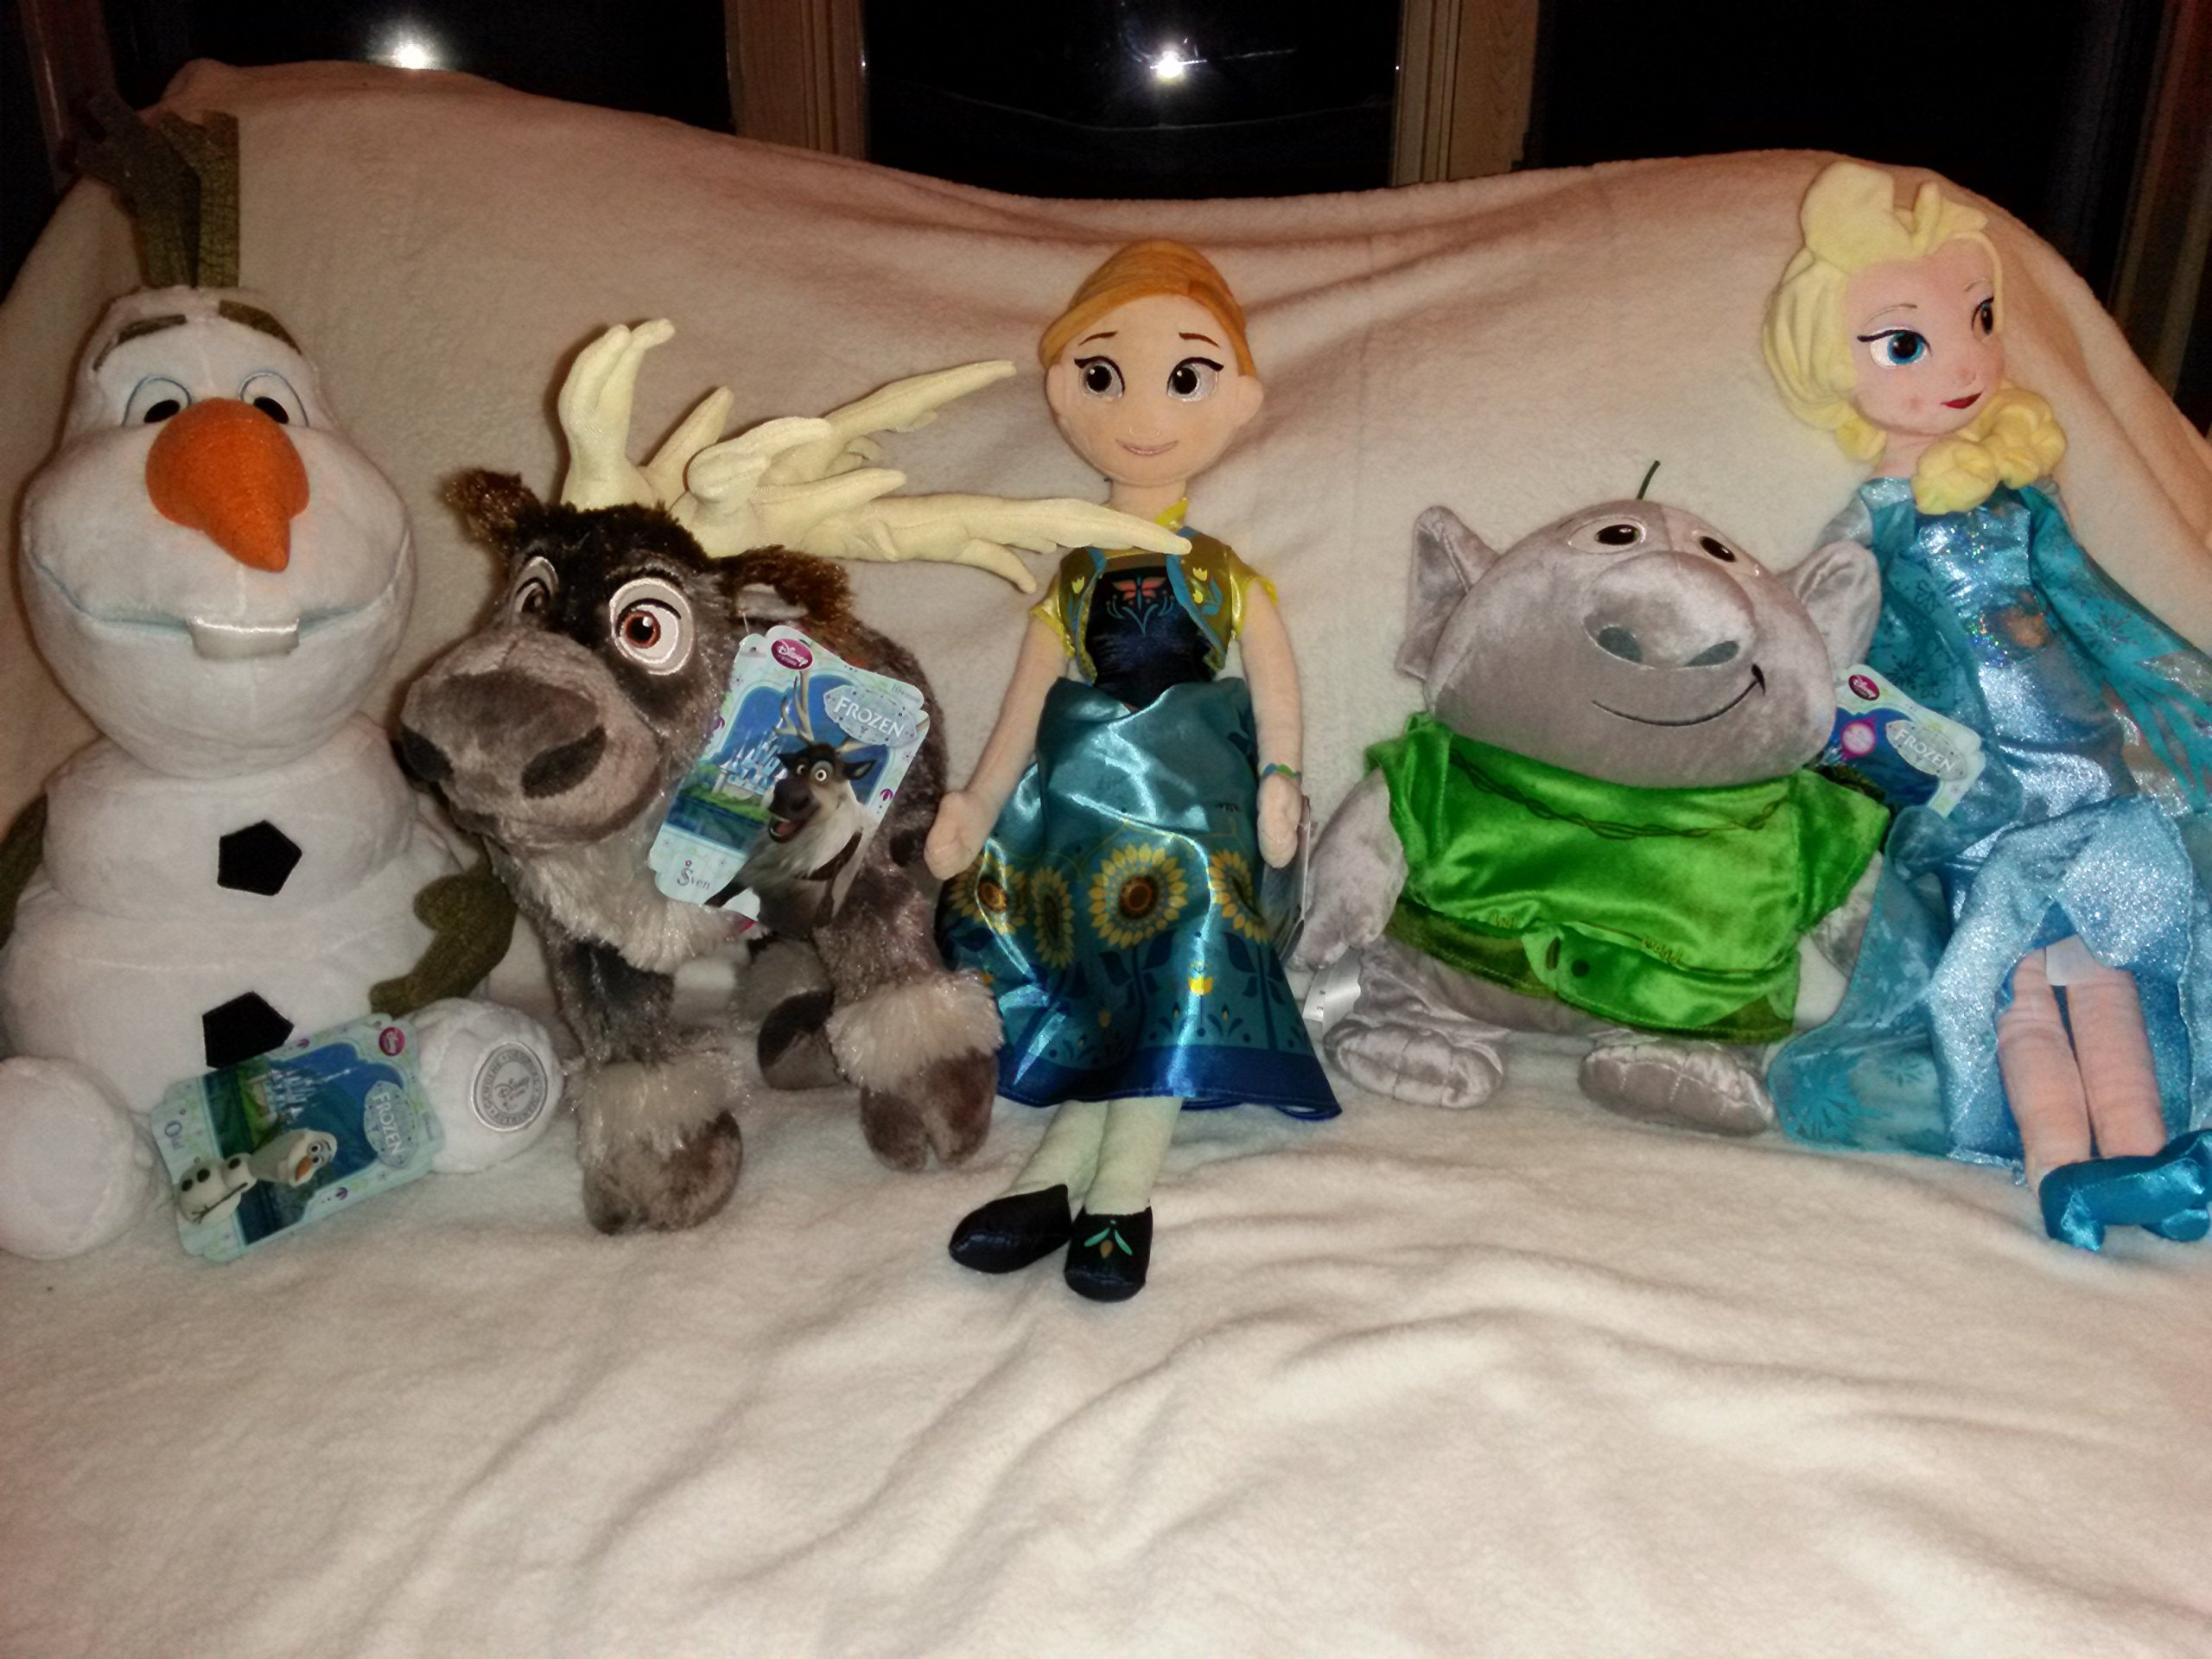 With Tags: Plush Frozen Set (5 Plushes): Olaf, Sven, Troll, Anna & Elsa (With Unpatterned Dress) by Disney